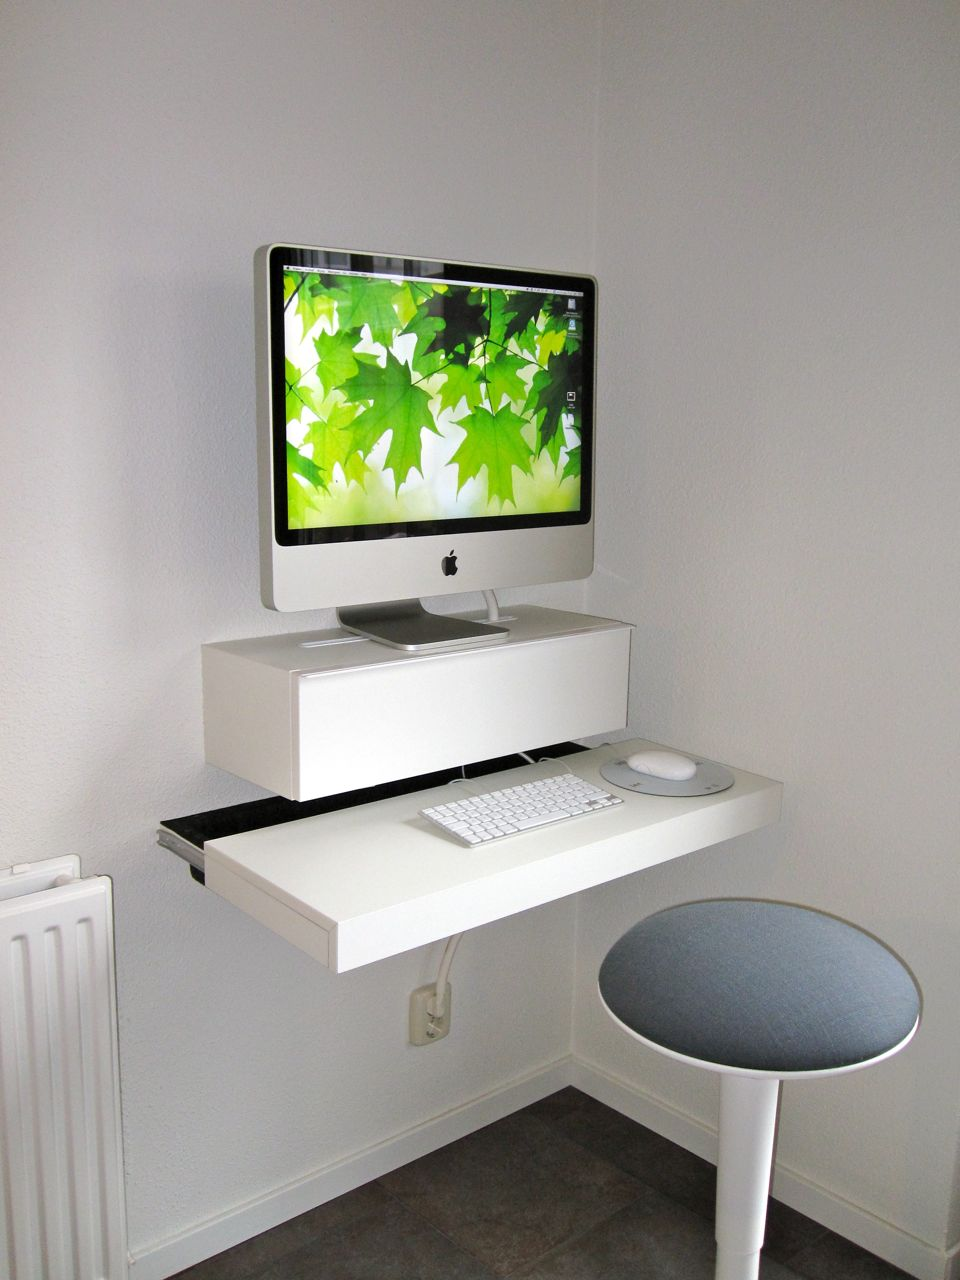 Simple And Minimalist Ikea Floating Computer Desk In White A Round Top Chair Without Back Feature